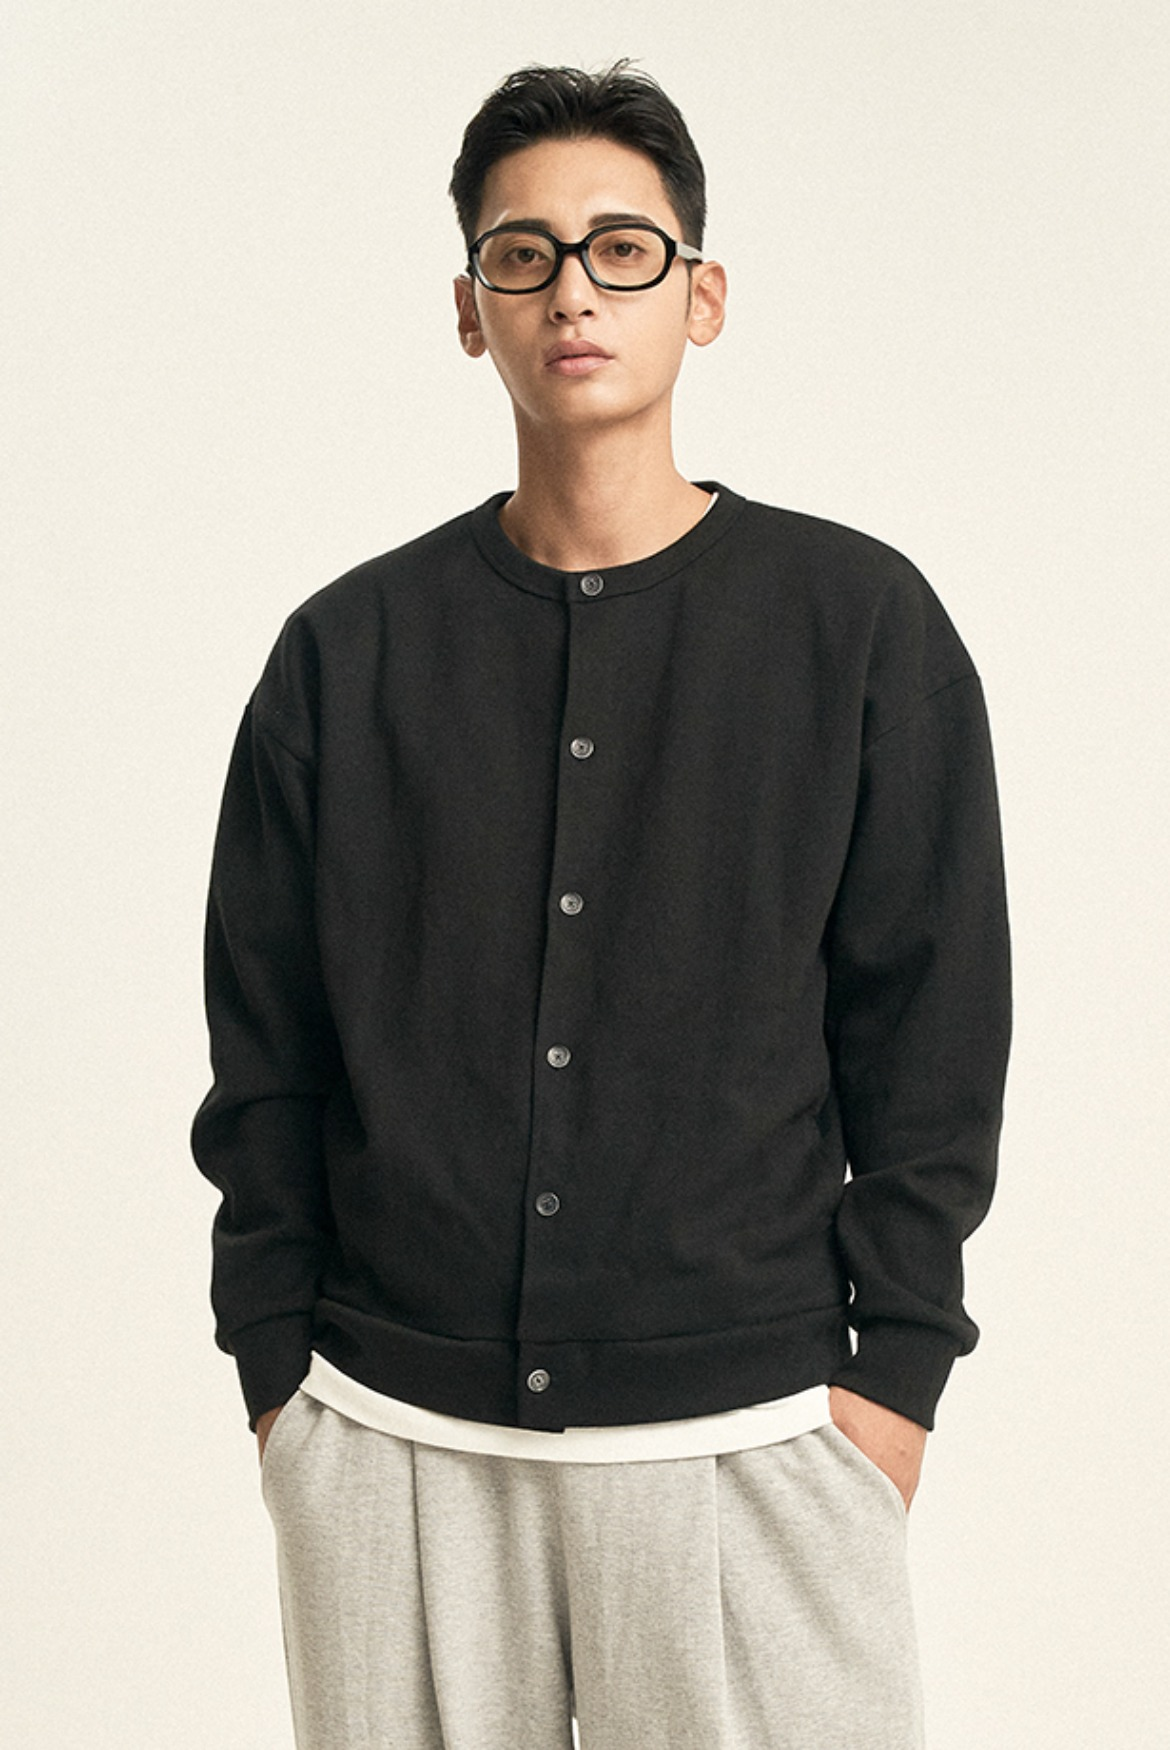 Cardigan Sweat Shirts [Black]